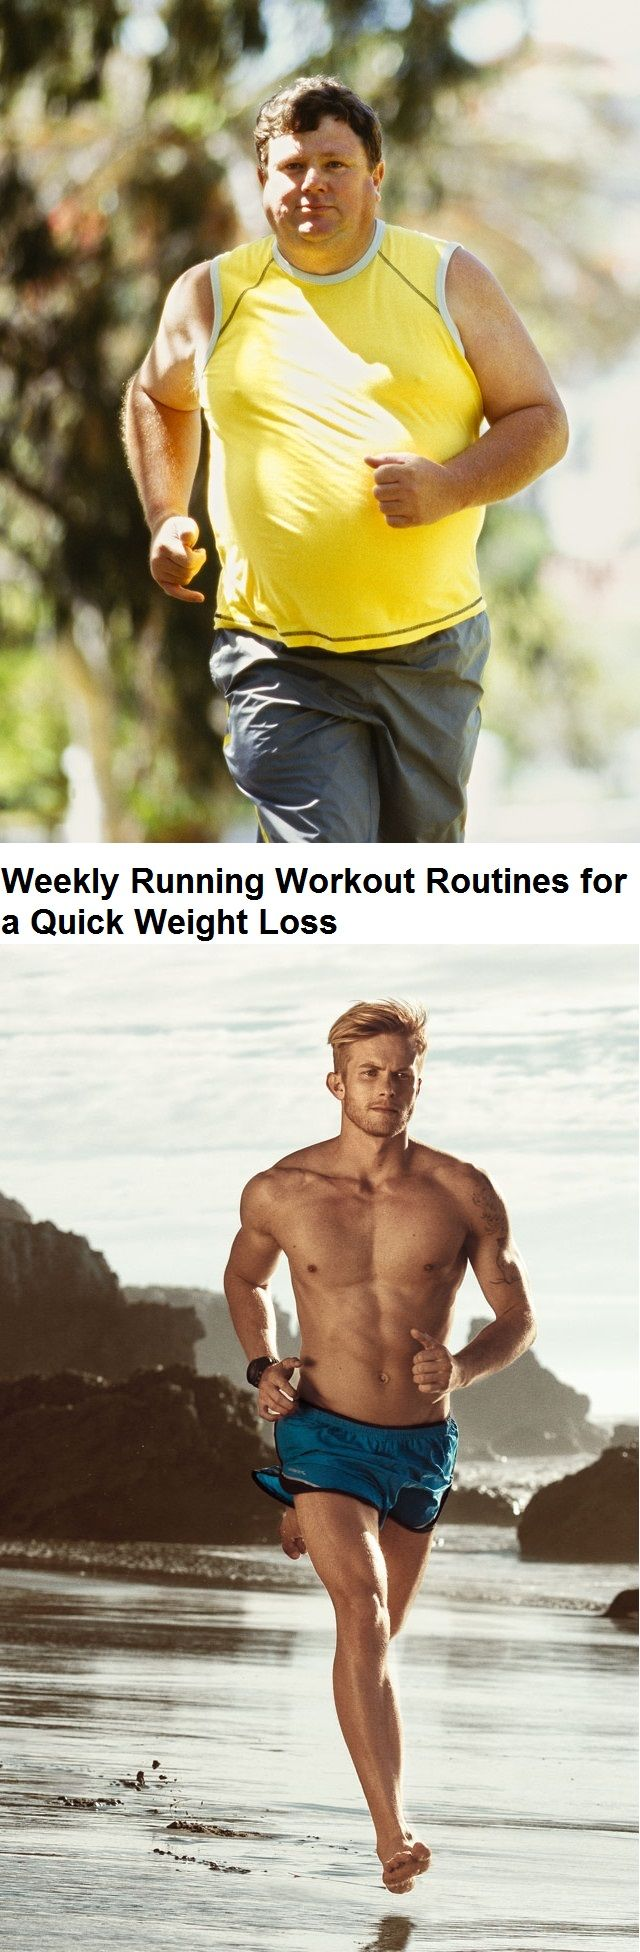 Running Weight Loss Routines